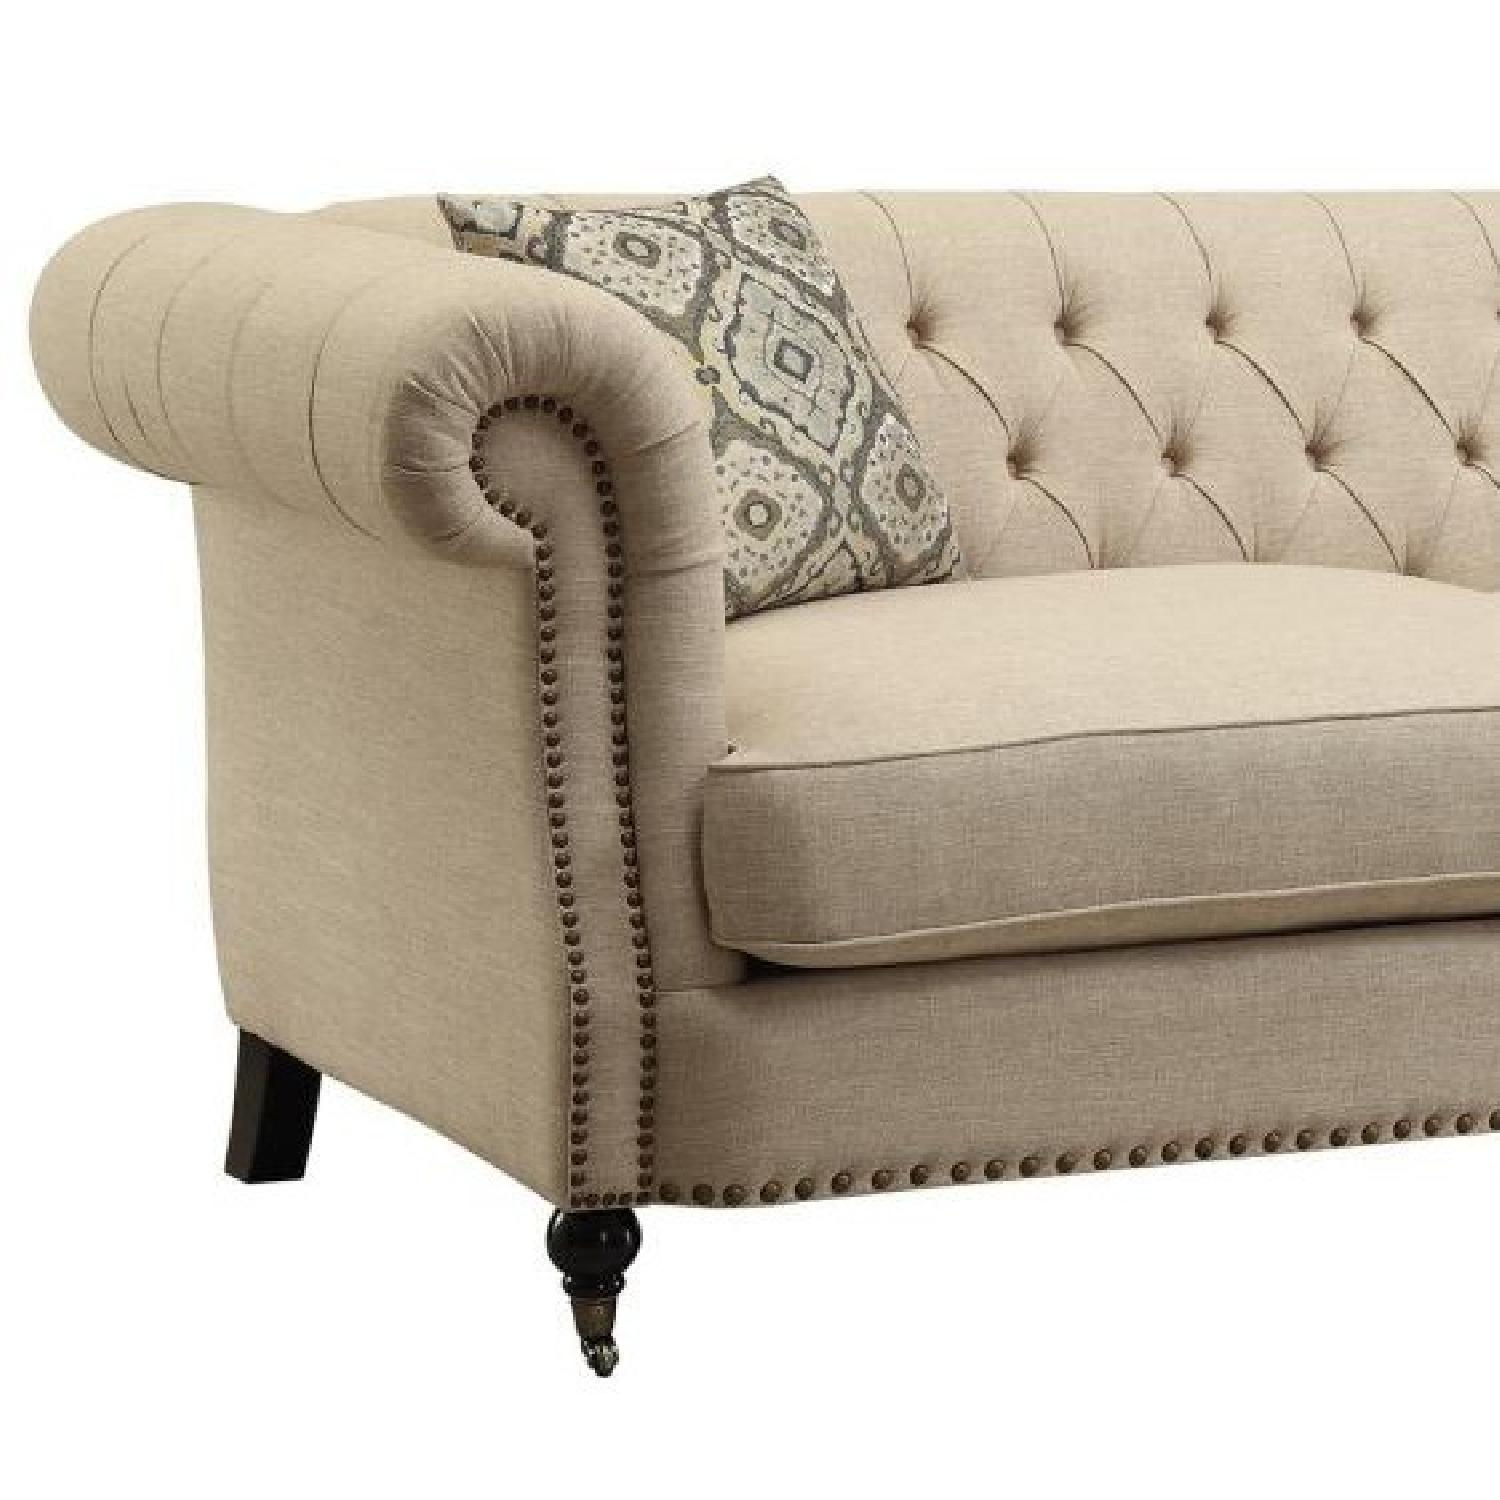 Wotj Tufted Back Rolled Arms Sofa w/ Nailhead Accent - image-2